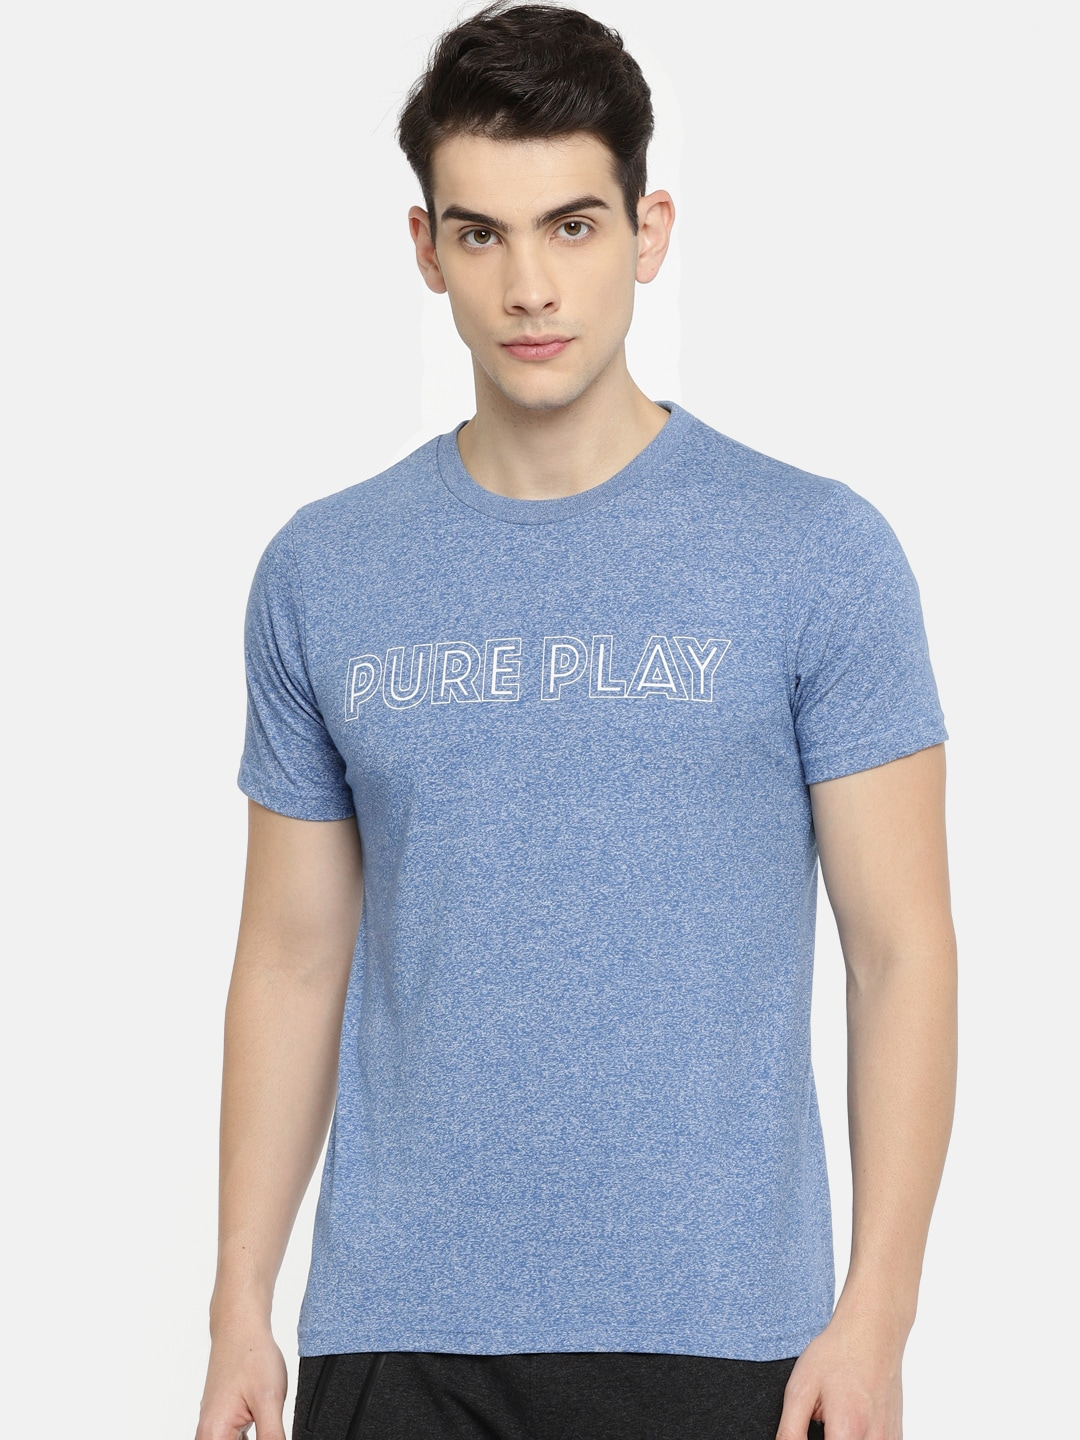 aa8cfd2d1 Net Play Tshirts - Buy Net Play Tshirts online in India